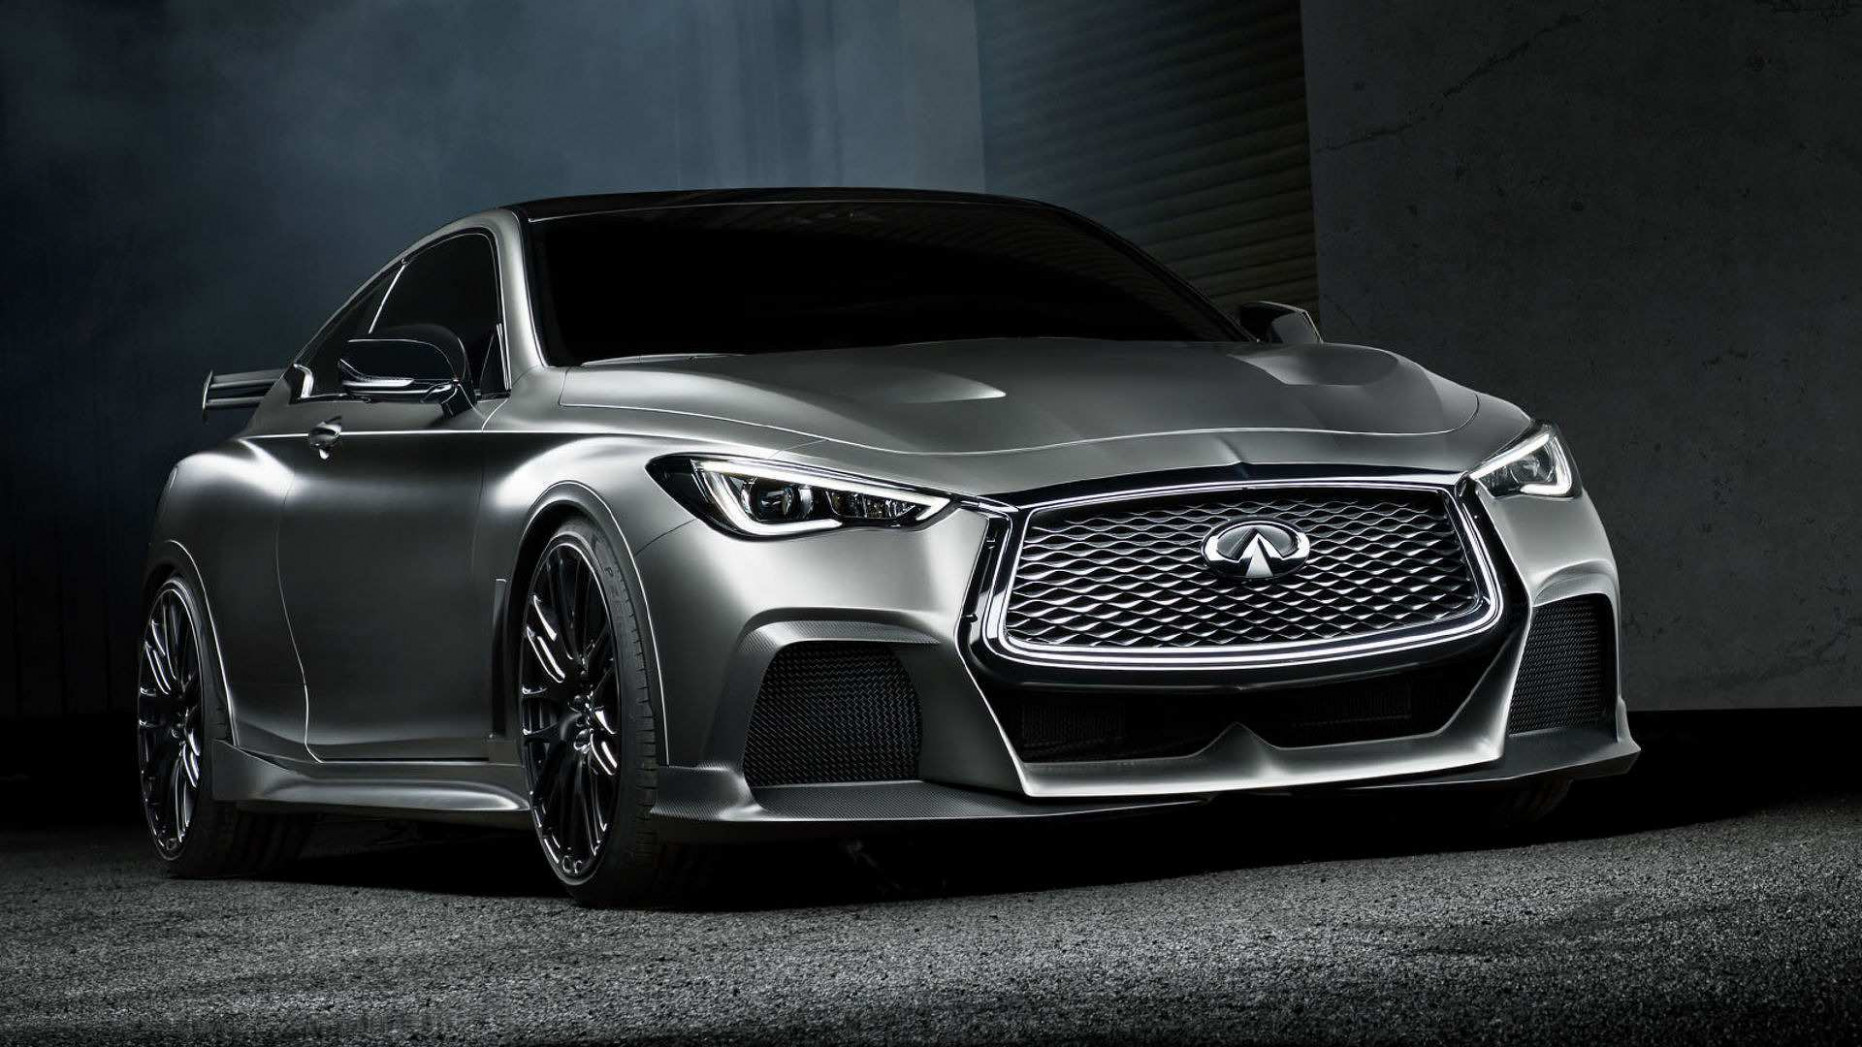 6 A 6 Infiniti G6 Concept and Review - Car Review 6 : Car ...